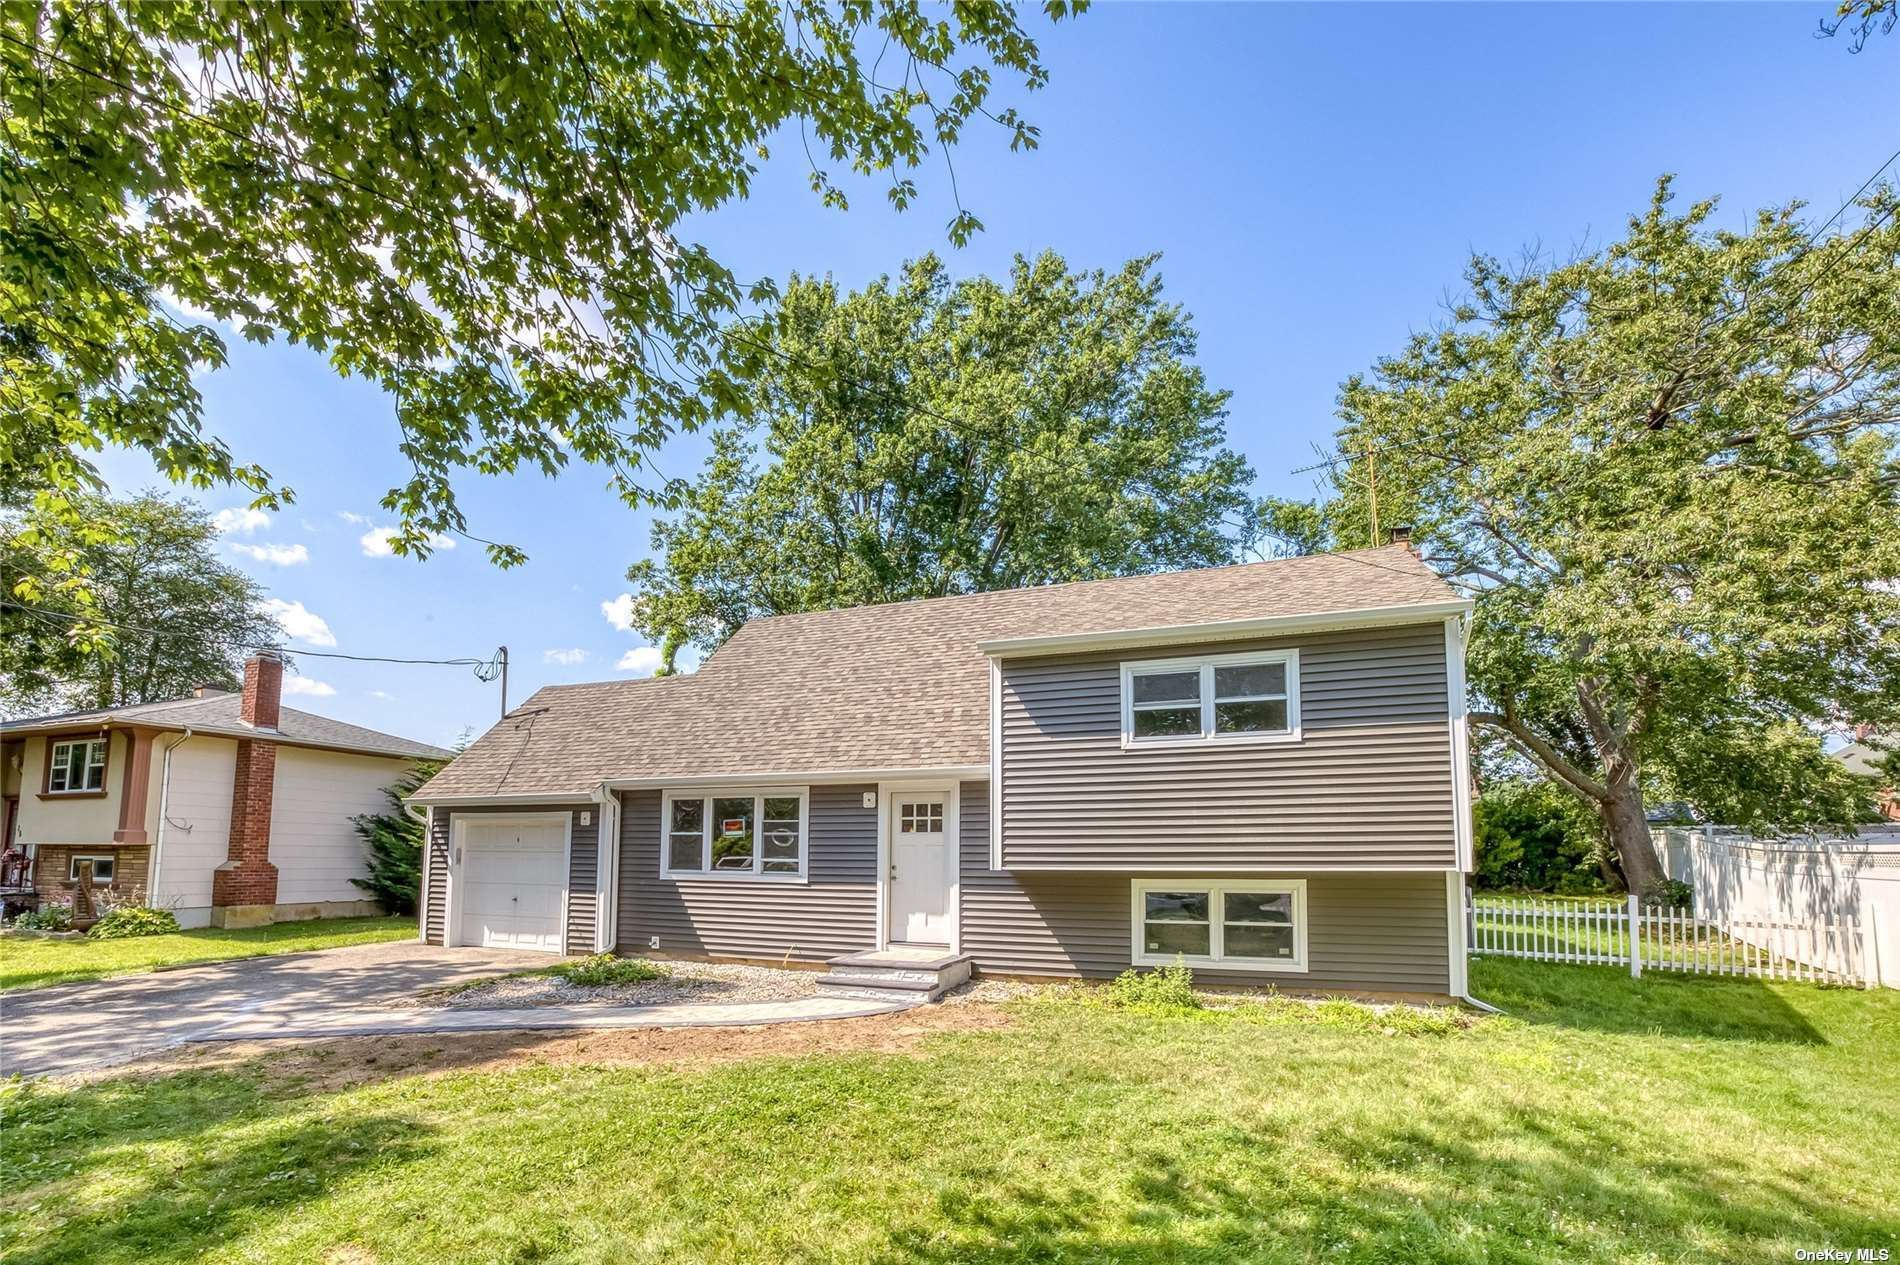 Photo of 23 Elwin Place, Copiague, NY 11726 (MLS # 3333481)